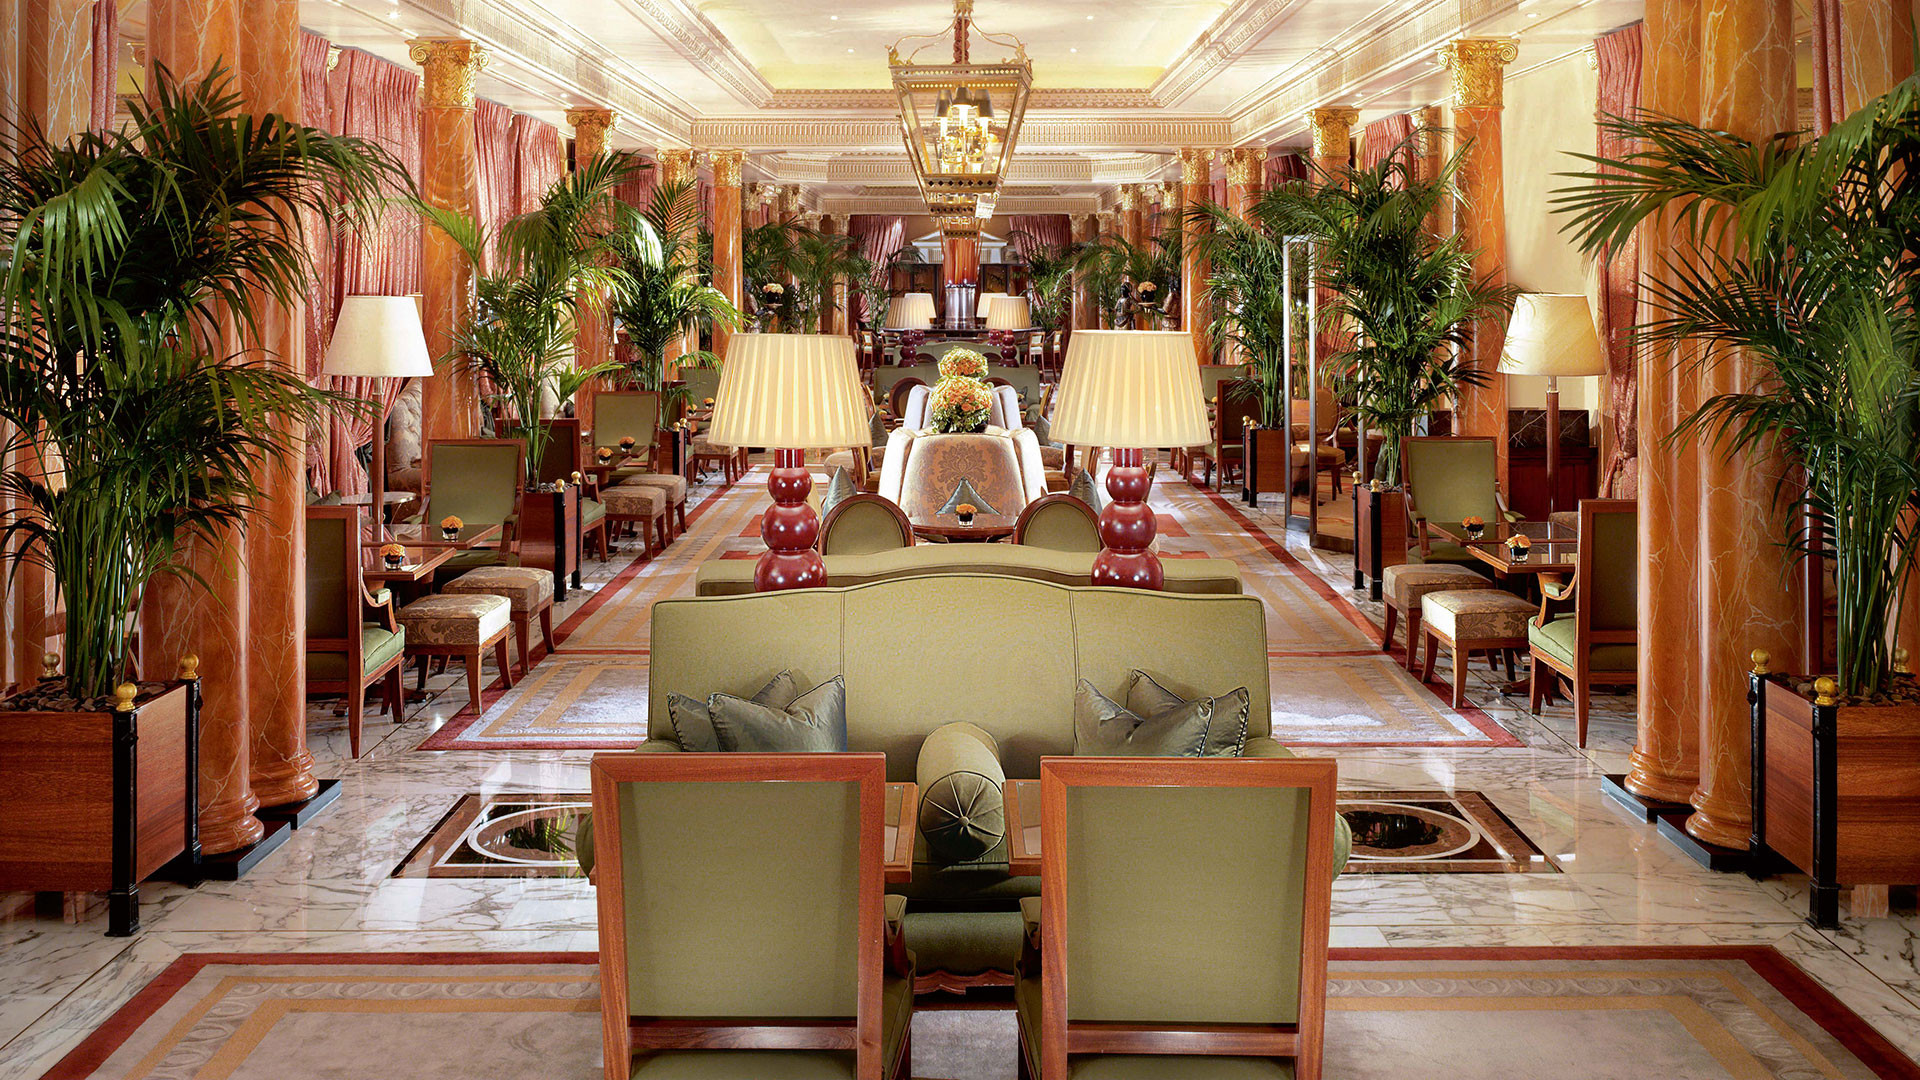 Afternoon tea at The Dorchester for Chelsea Flower Show